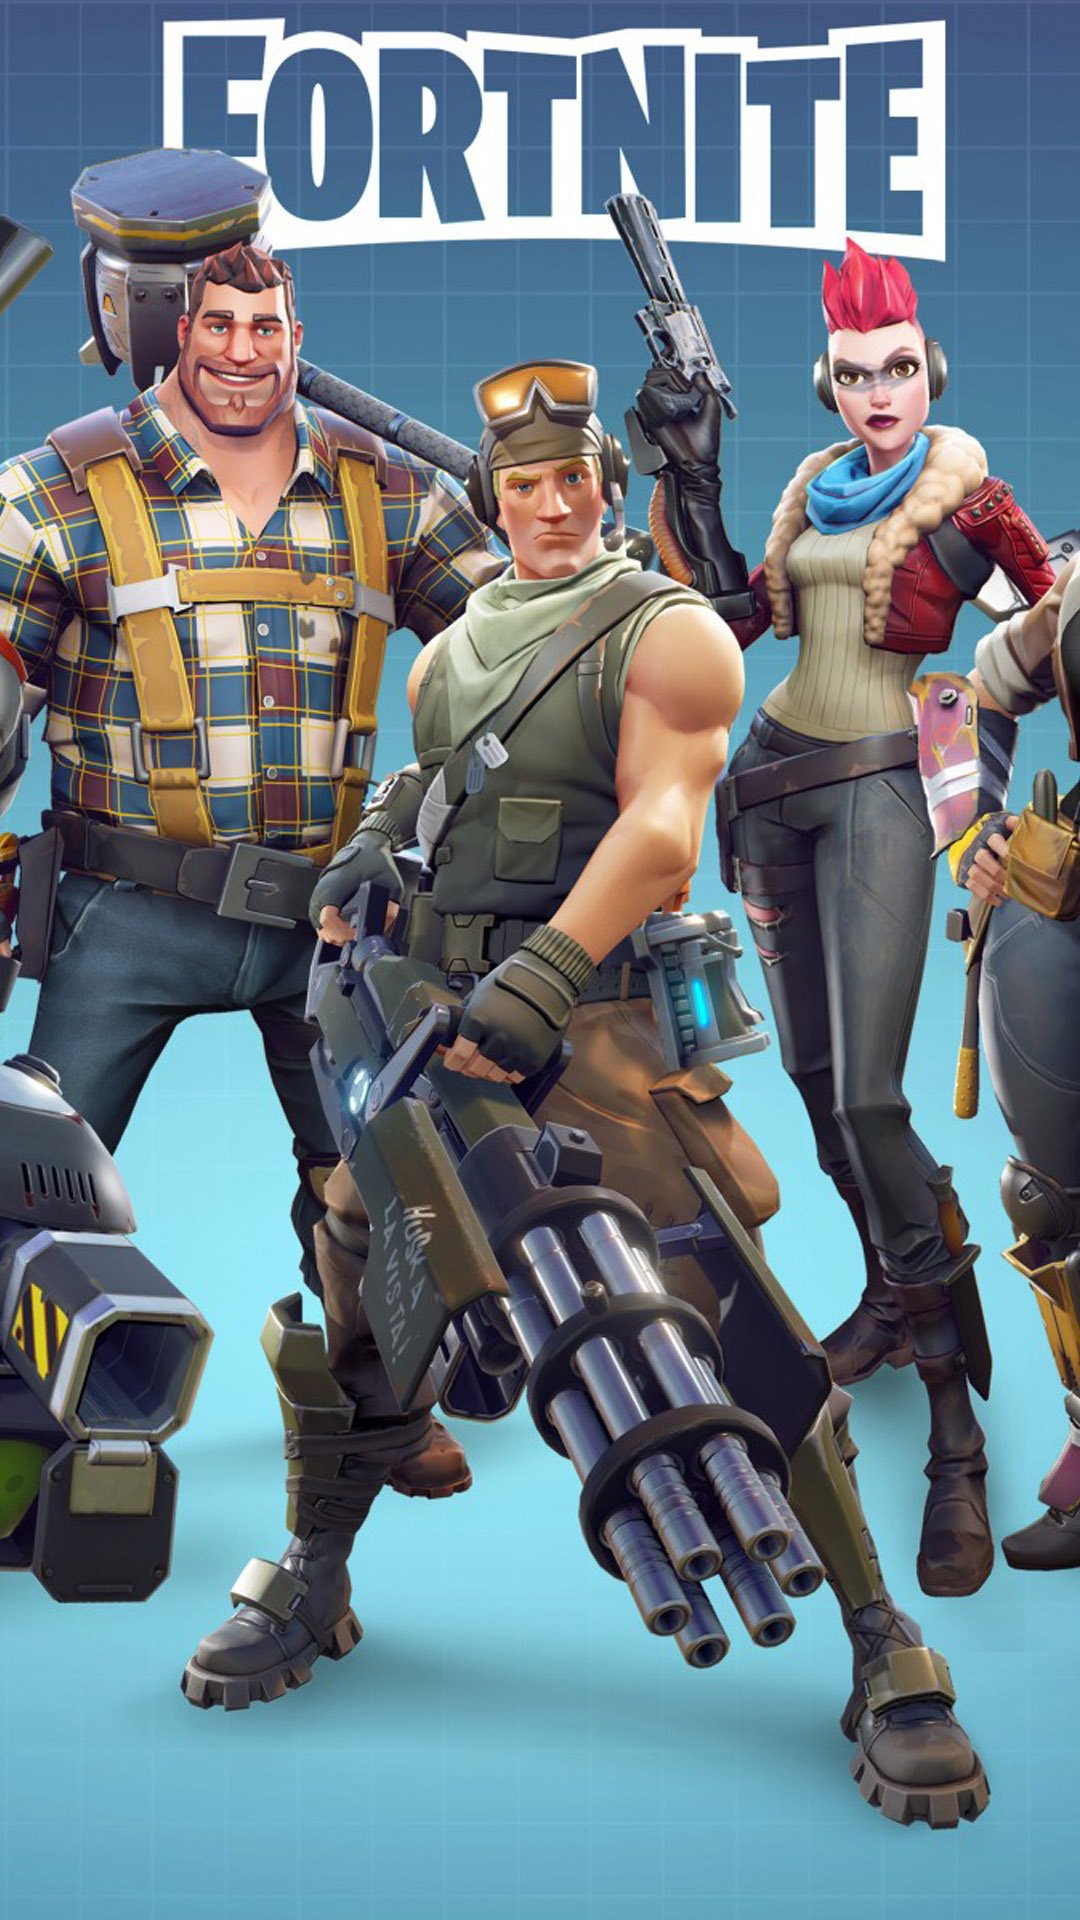 Fortnite Battle Royale Hd Mobile Wallpaper Download Free 100 Pure